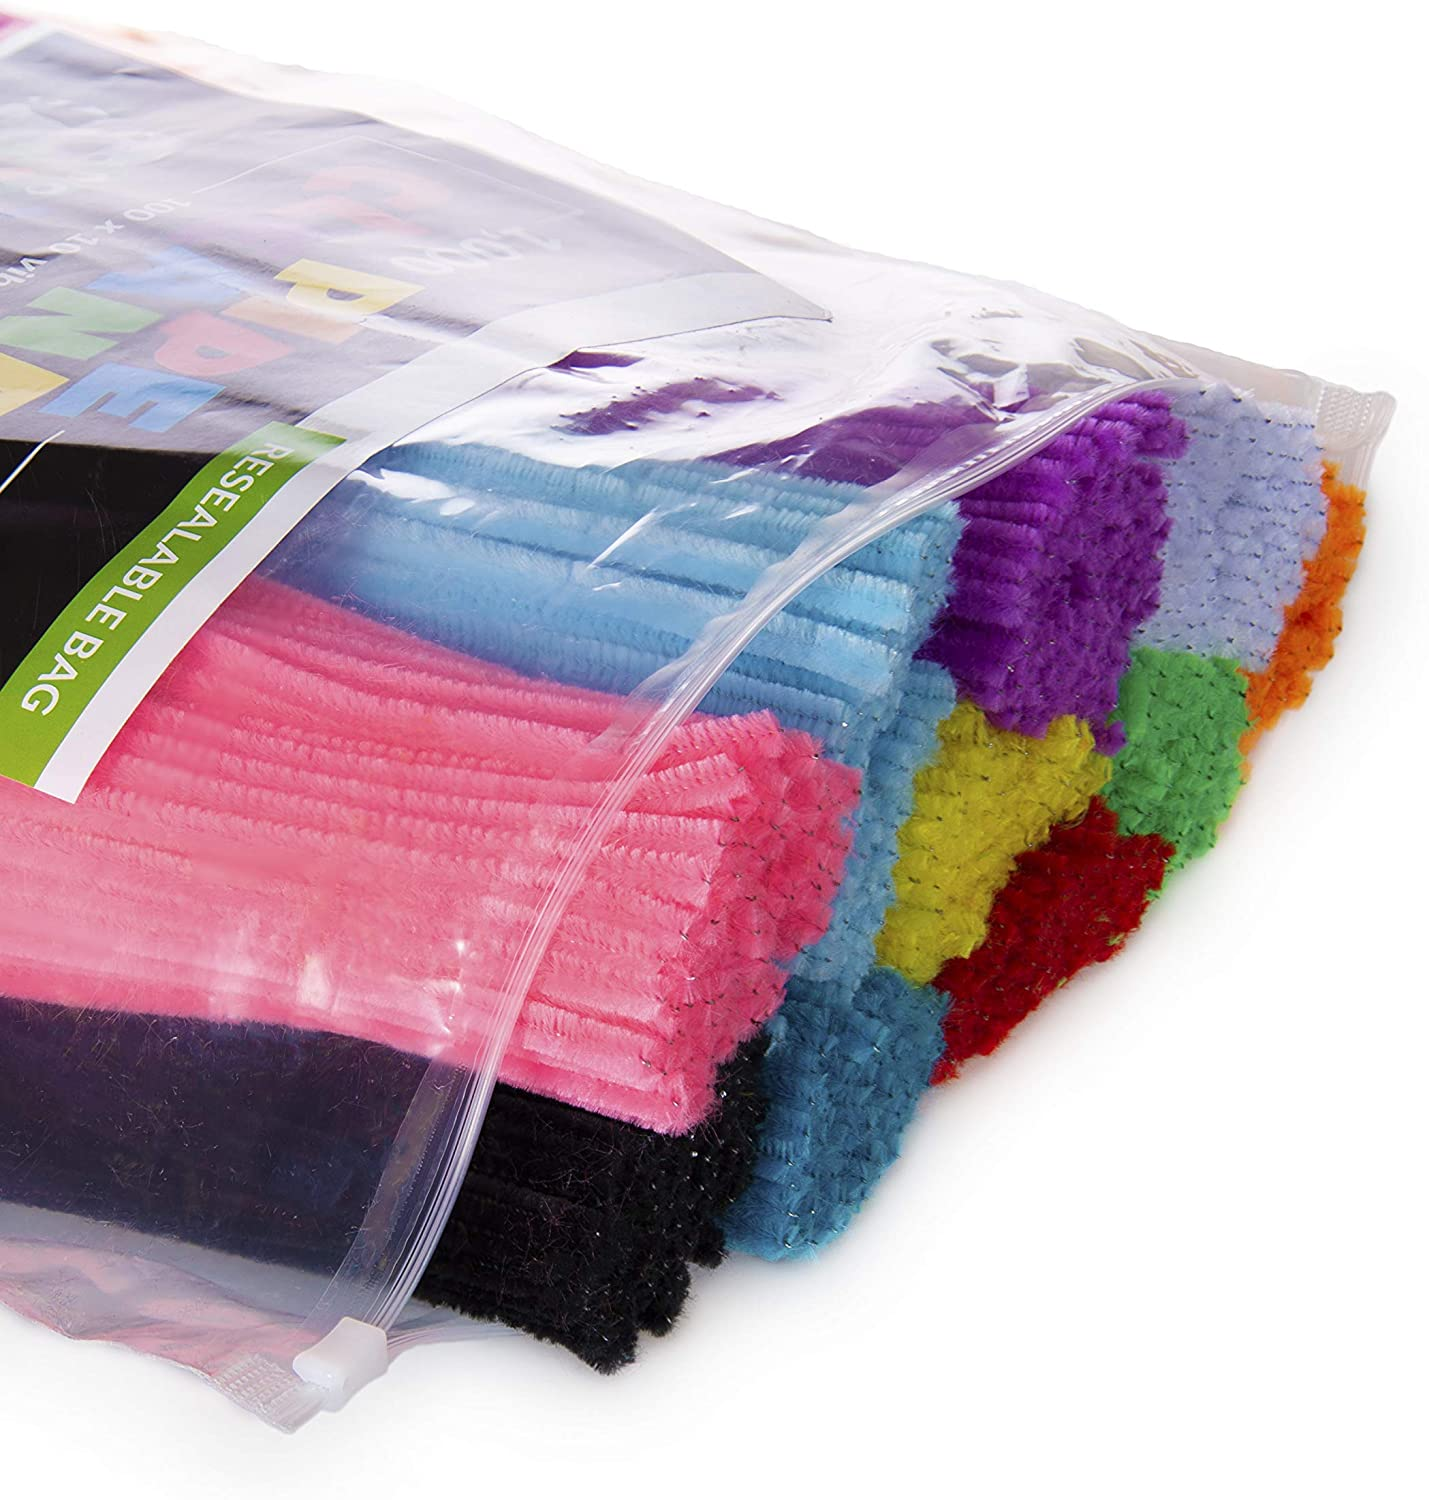 300mm One Size Multicultural Colours Asst Creation Stations CT4048 Loopy Pipe Cleaners